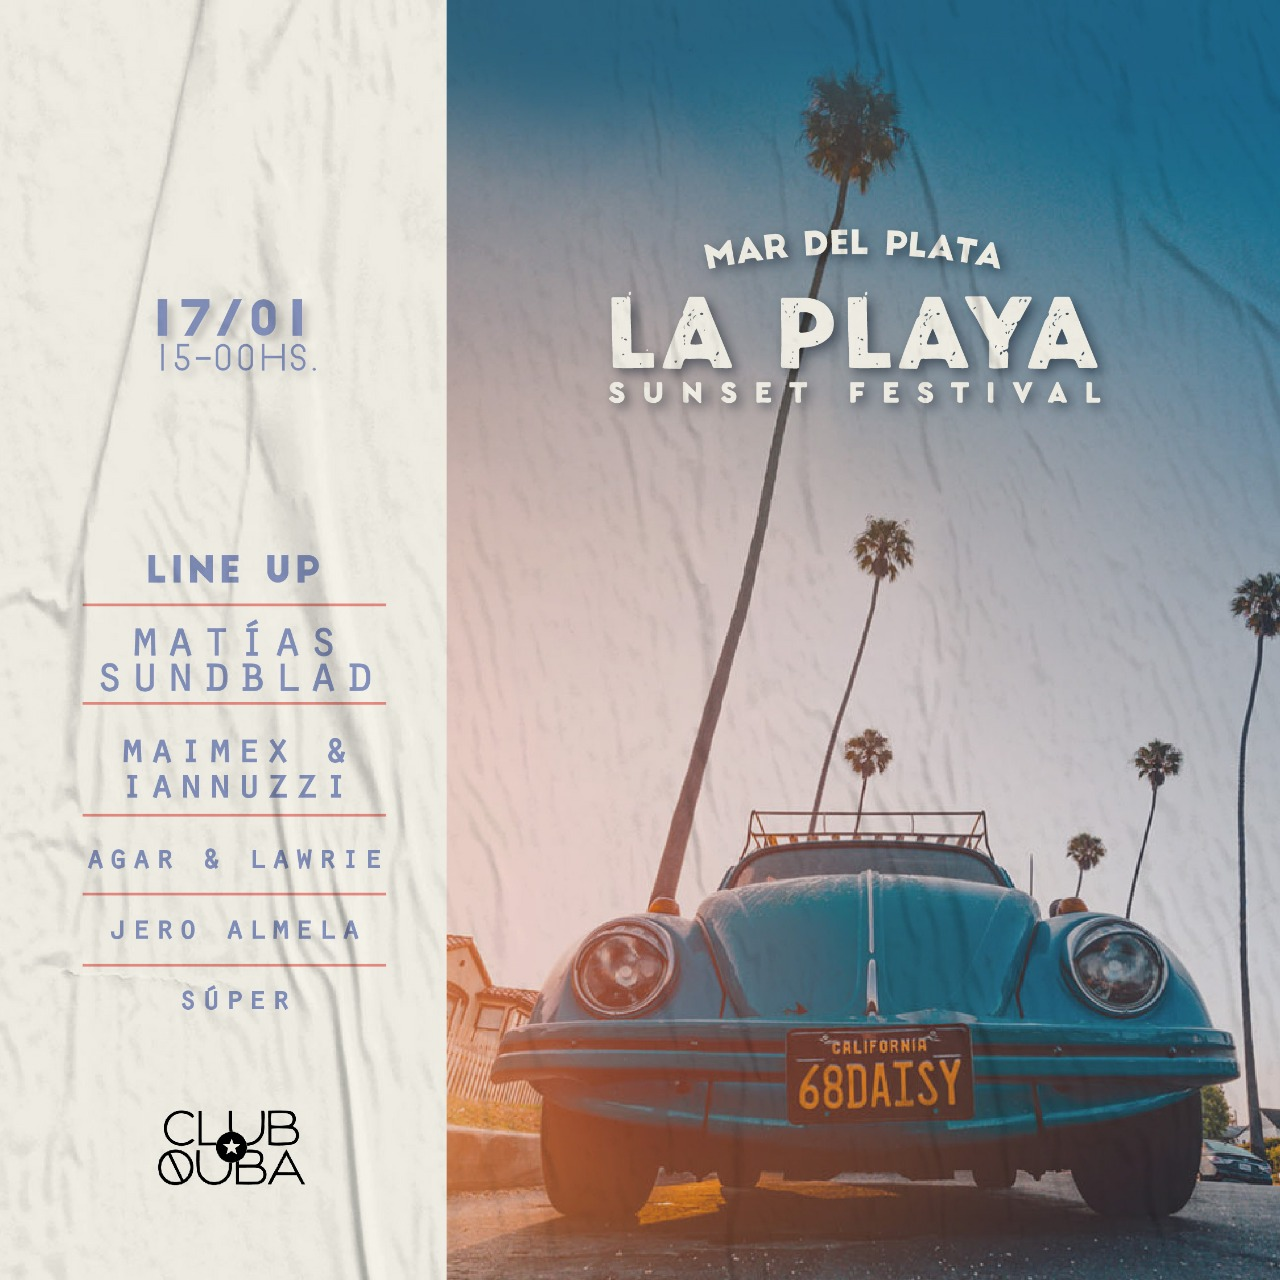 LA PLAYA Sunset Festival at club Quba at The beach (Mar del Plata)